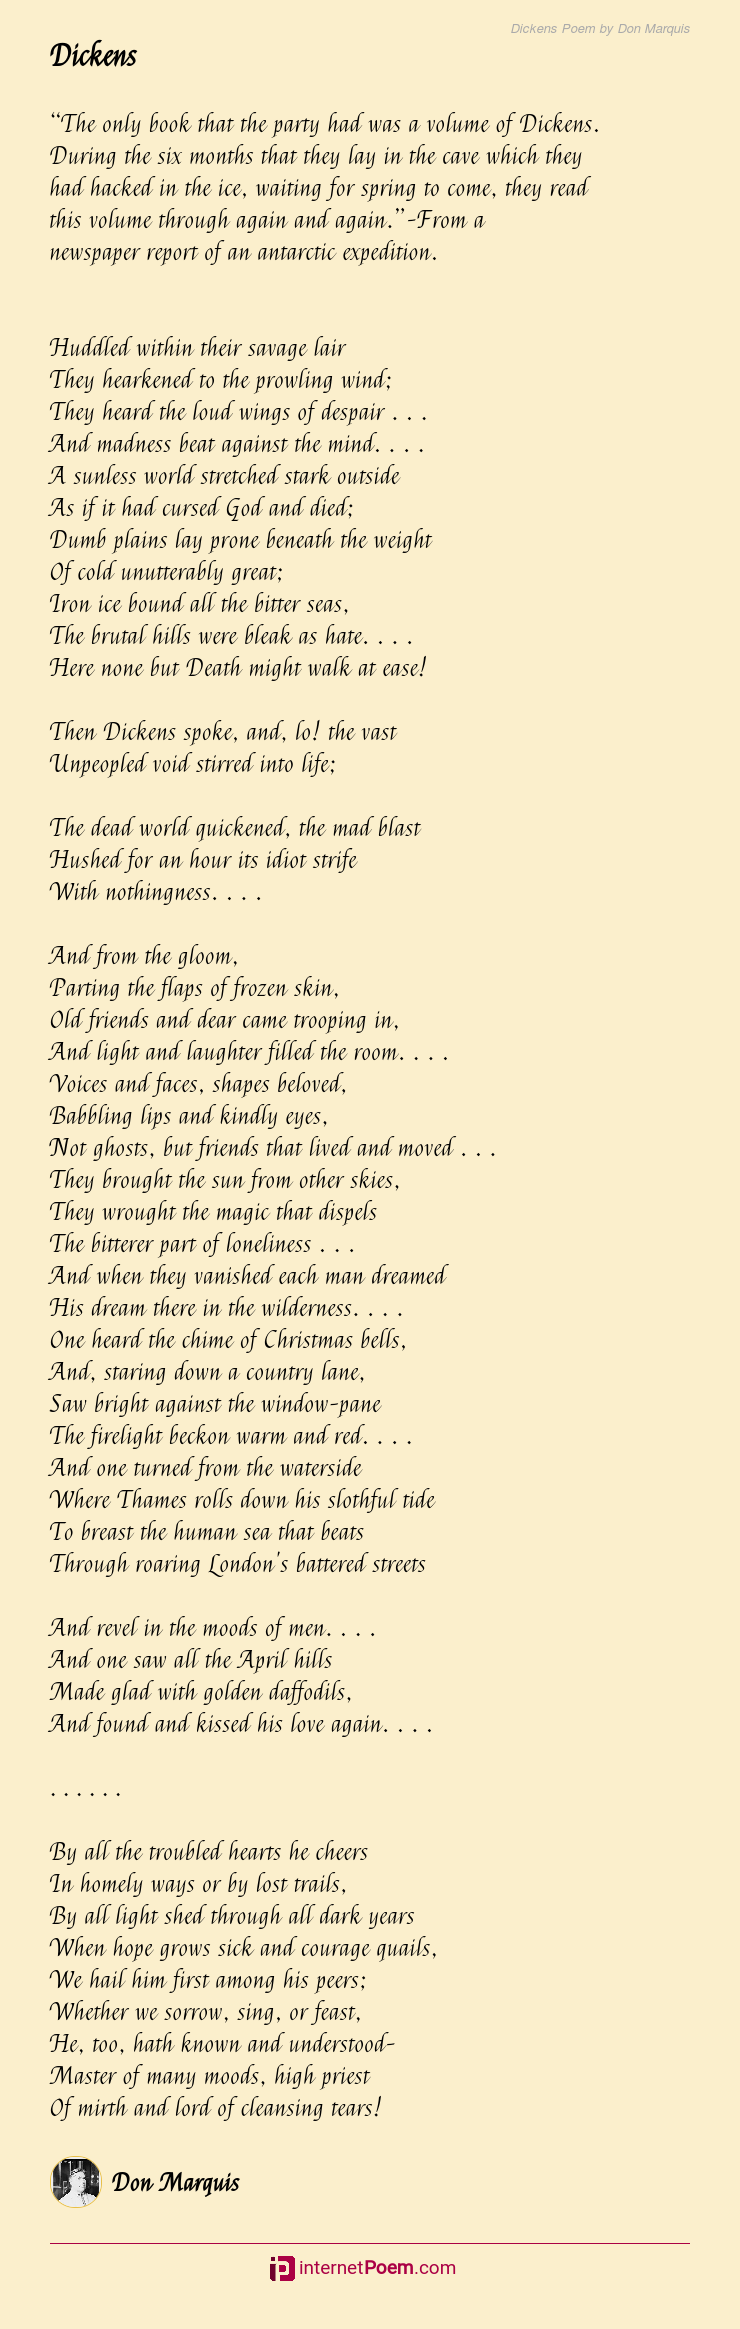 Dickens Poem By Don Marquis